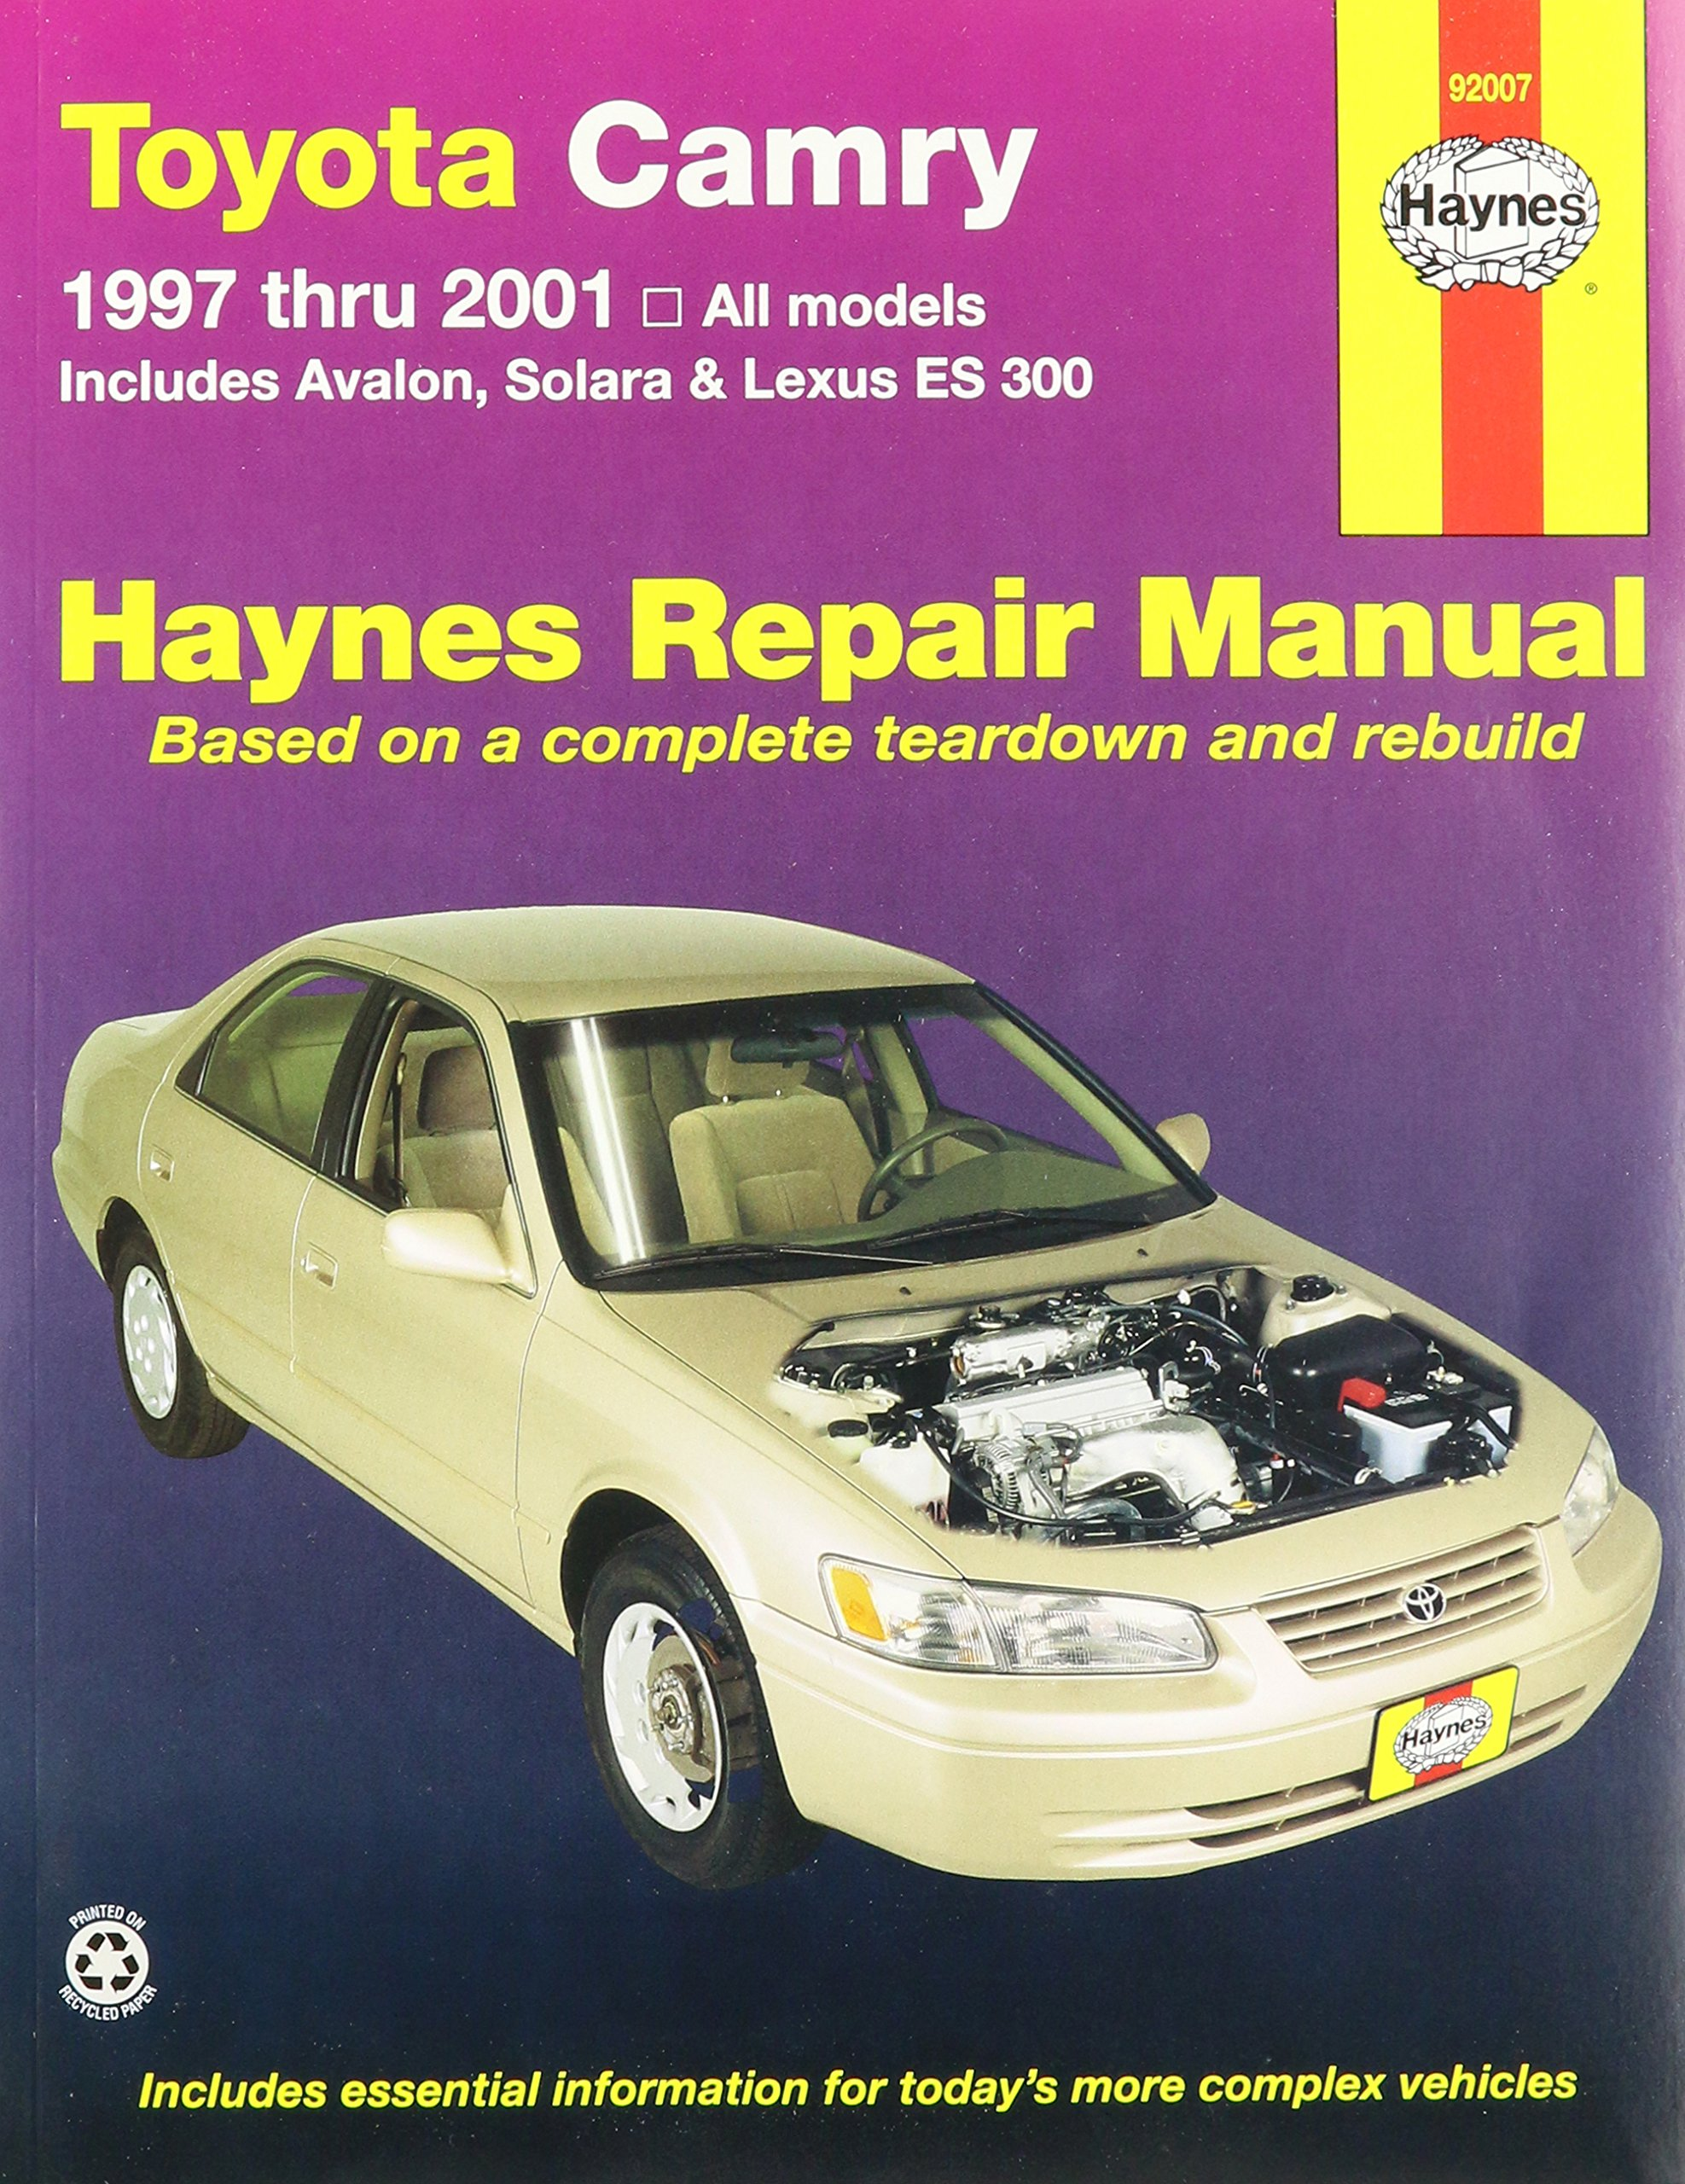 1998 toyota solara owners manual simple instruction guide books u2022 rh catsmile co 1998 Toyota Camry Green 1998 Toyota Camry Suspension